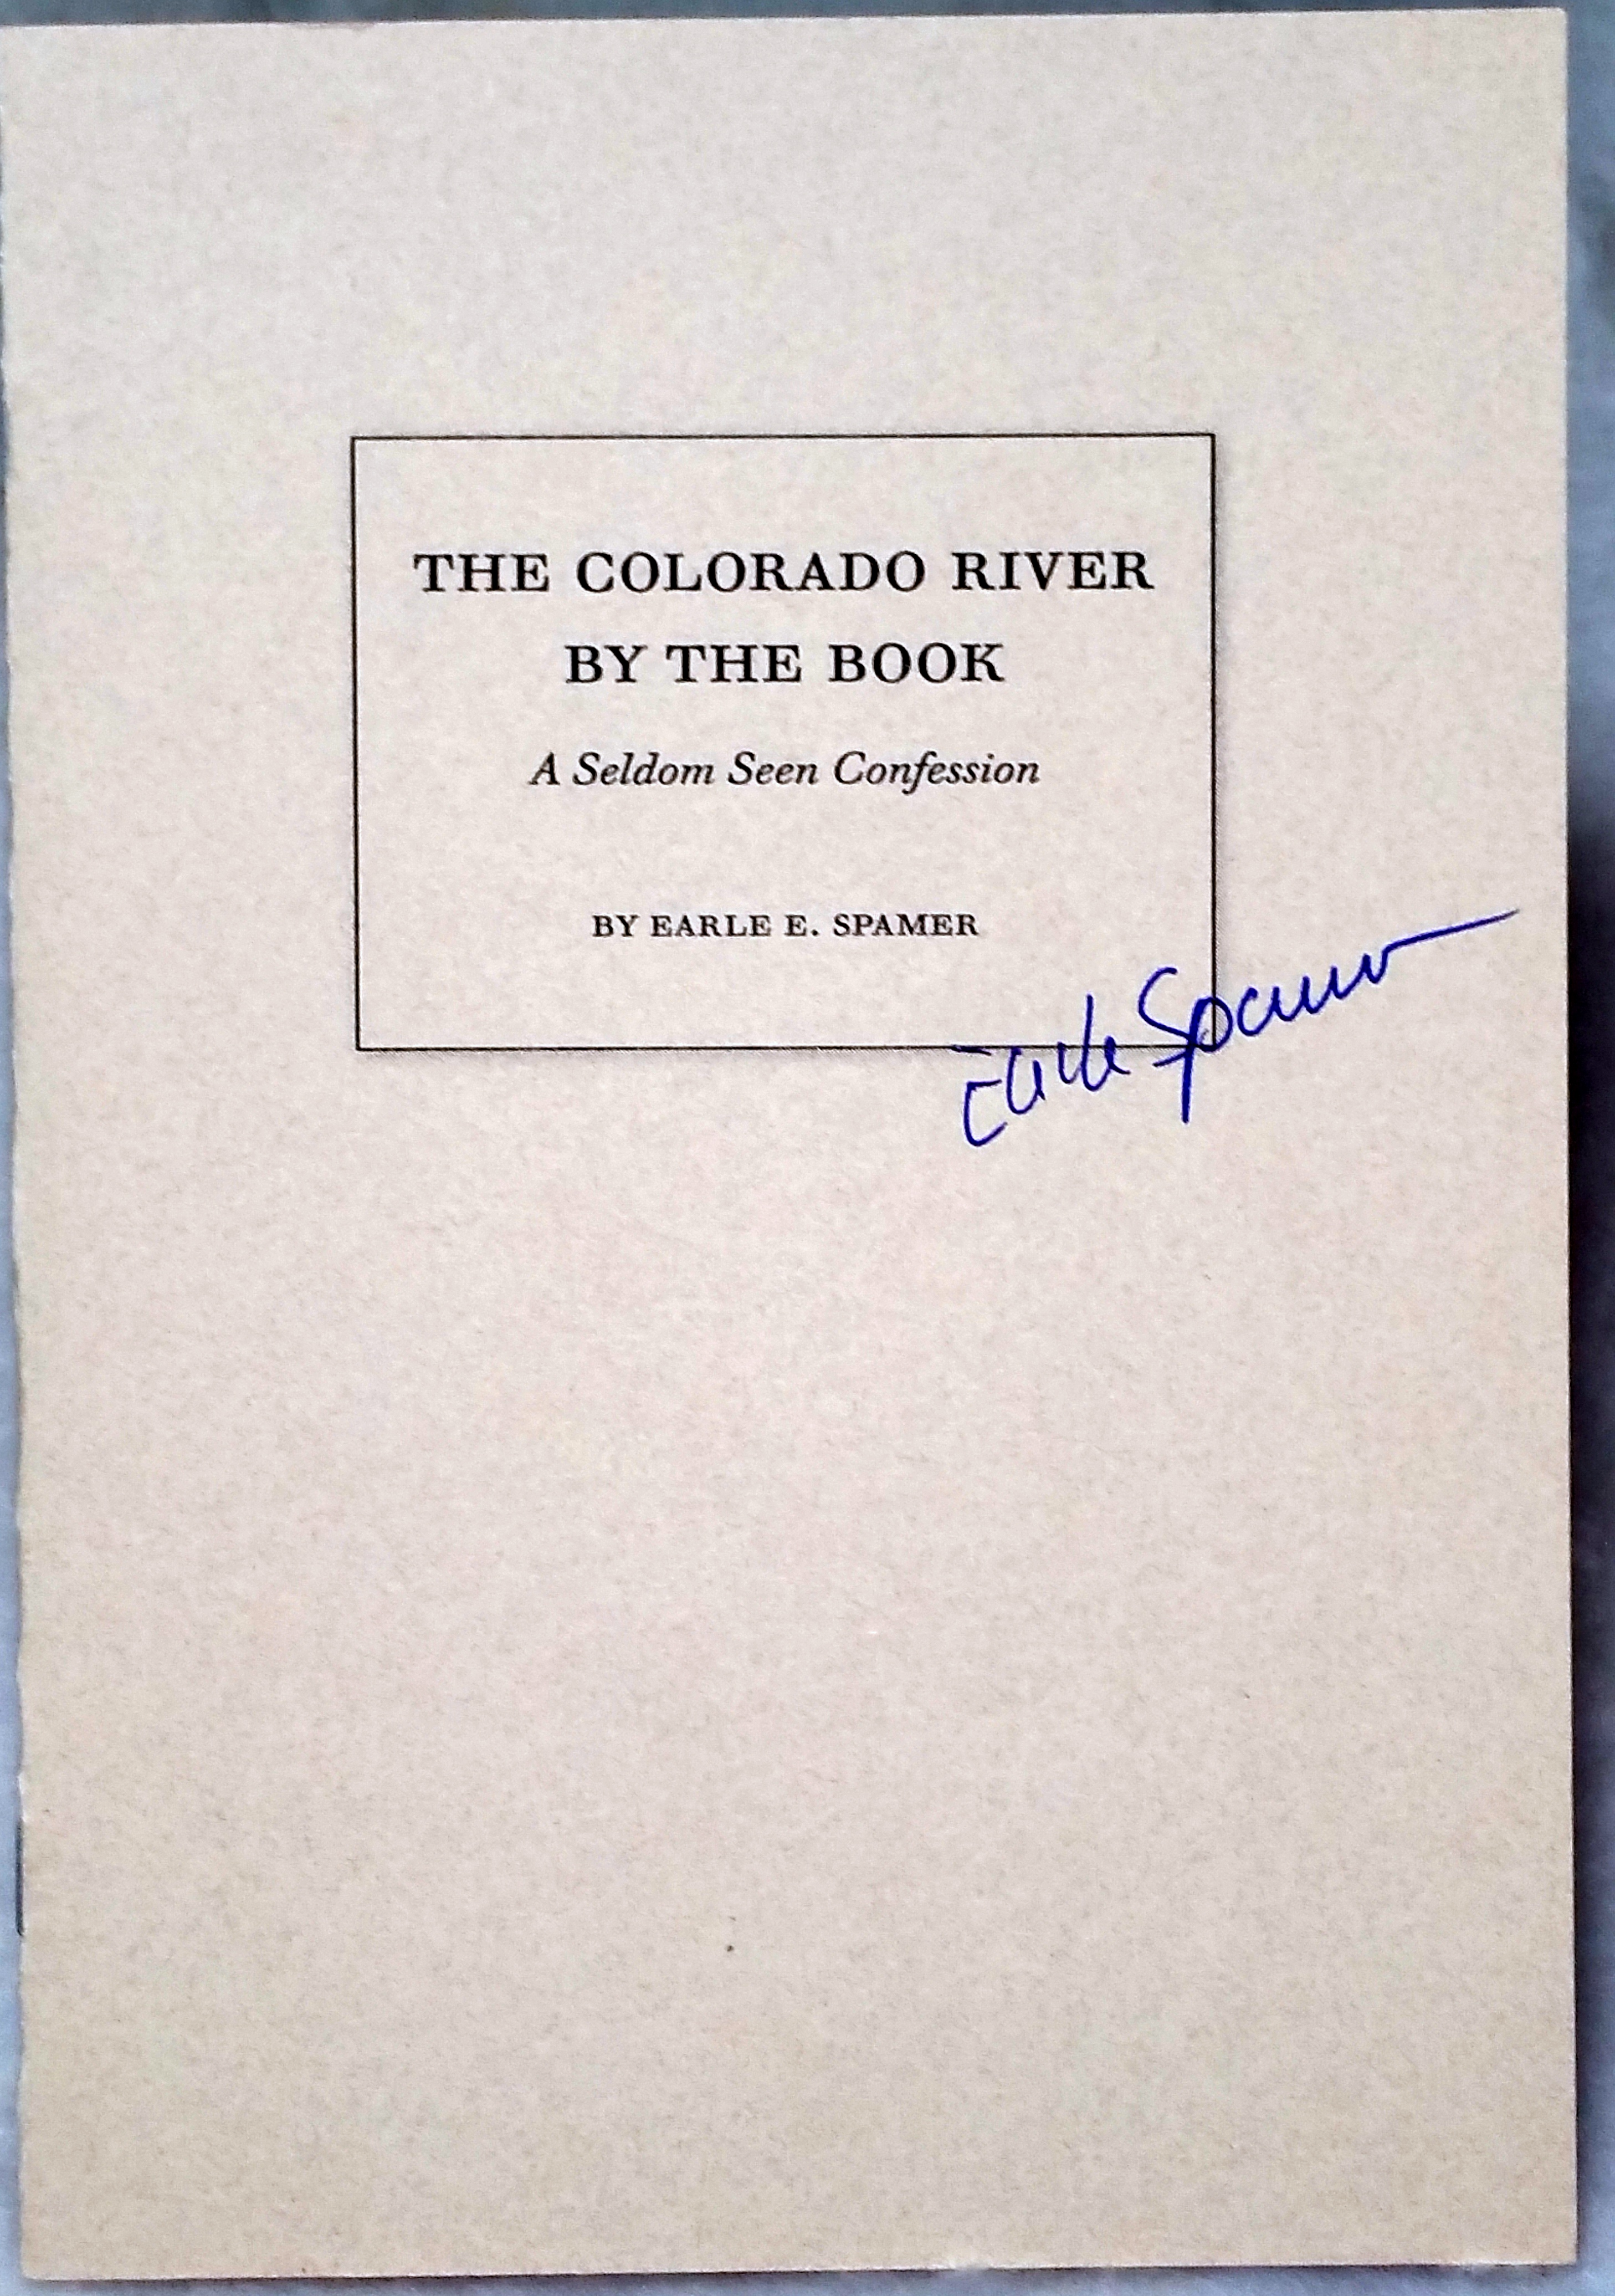 Image for The Books of the Grand Canyon, The Colorado River, The Green River & The Colorado Plateau, 1953-2003:  A Selective Bibliography [with] The Books of the Colorado River & Grand Canyon: A Selective Bibliography [with] The Colorado River By the Book...